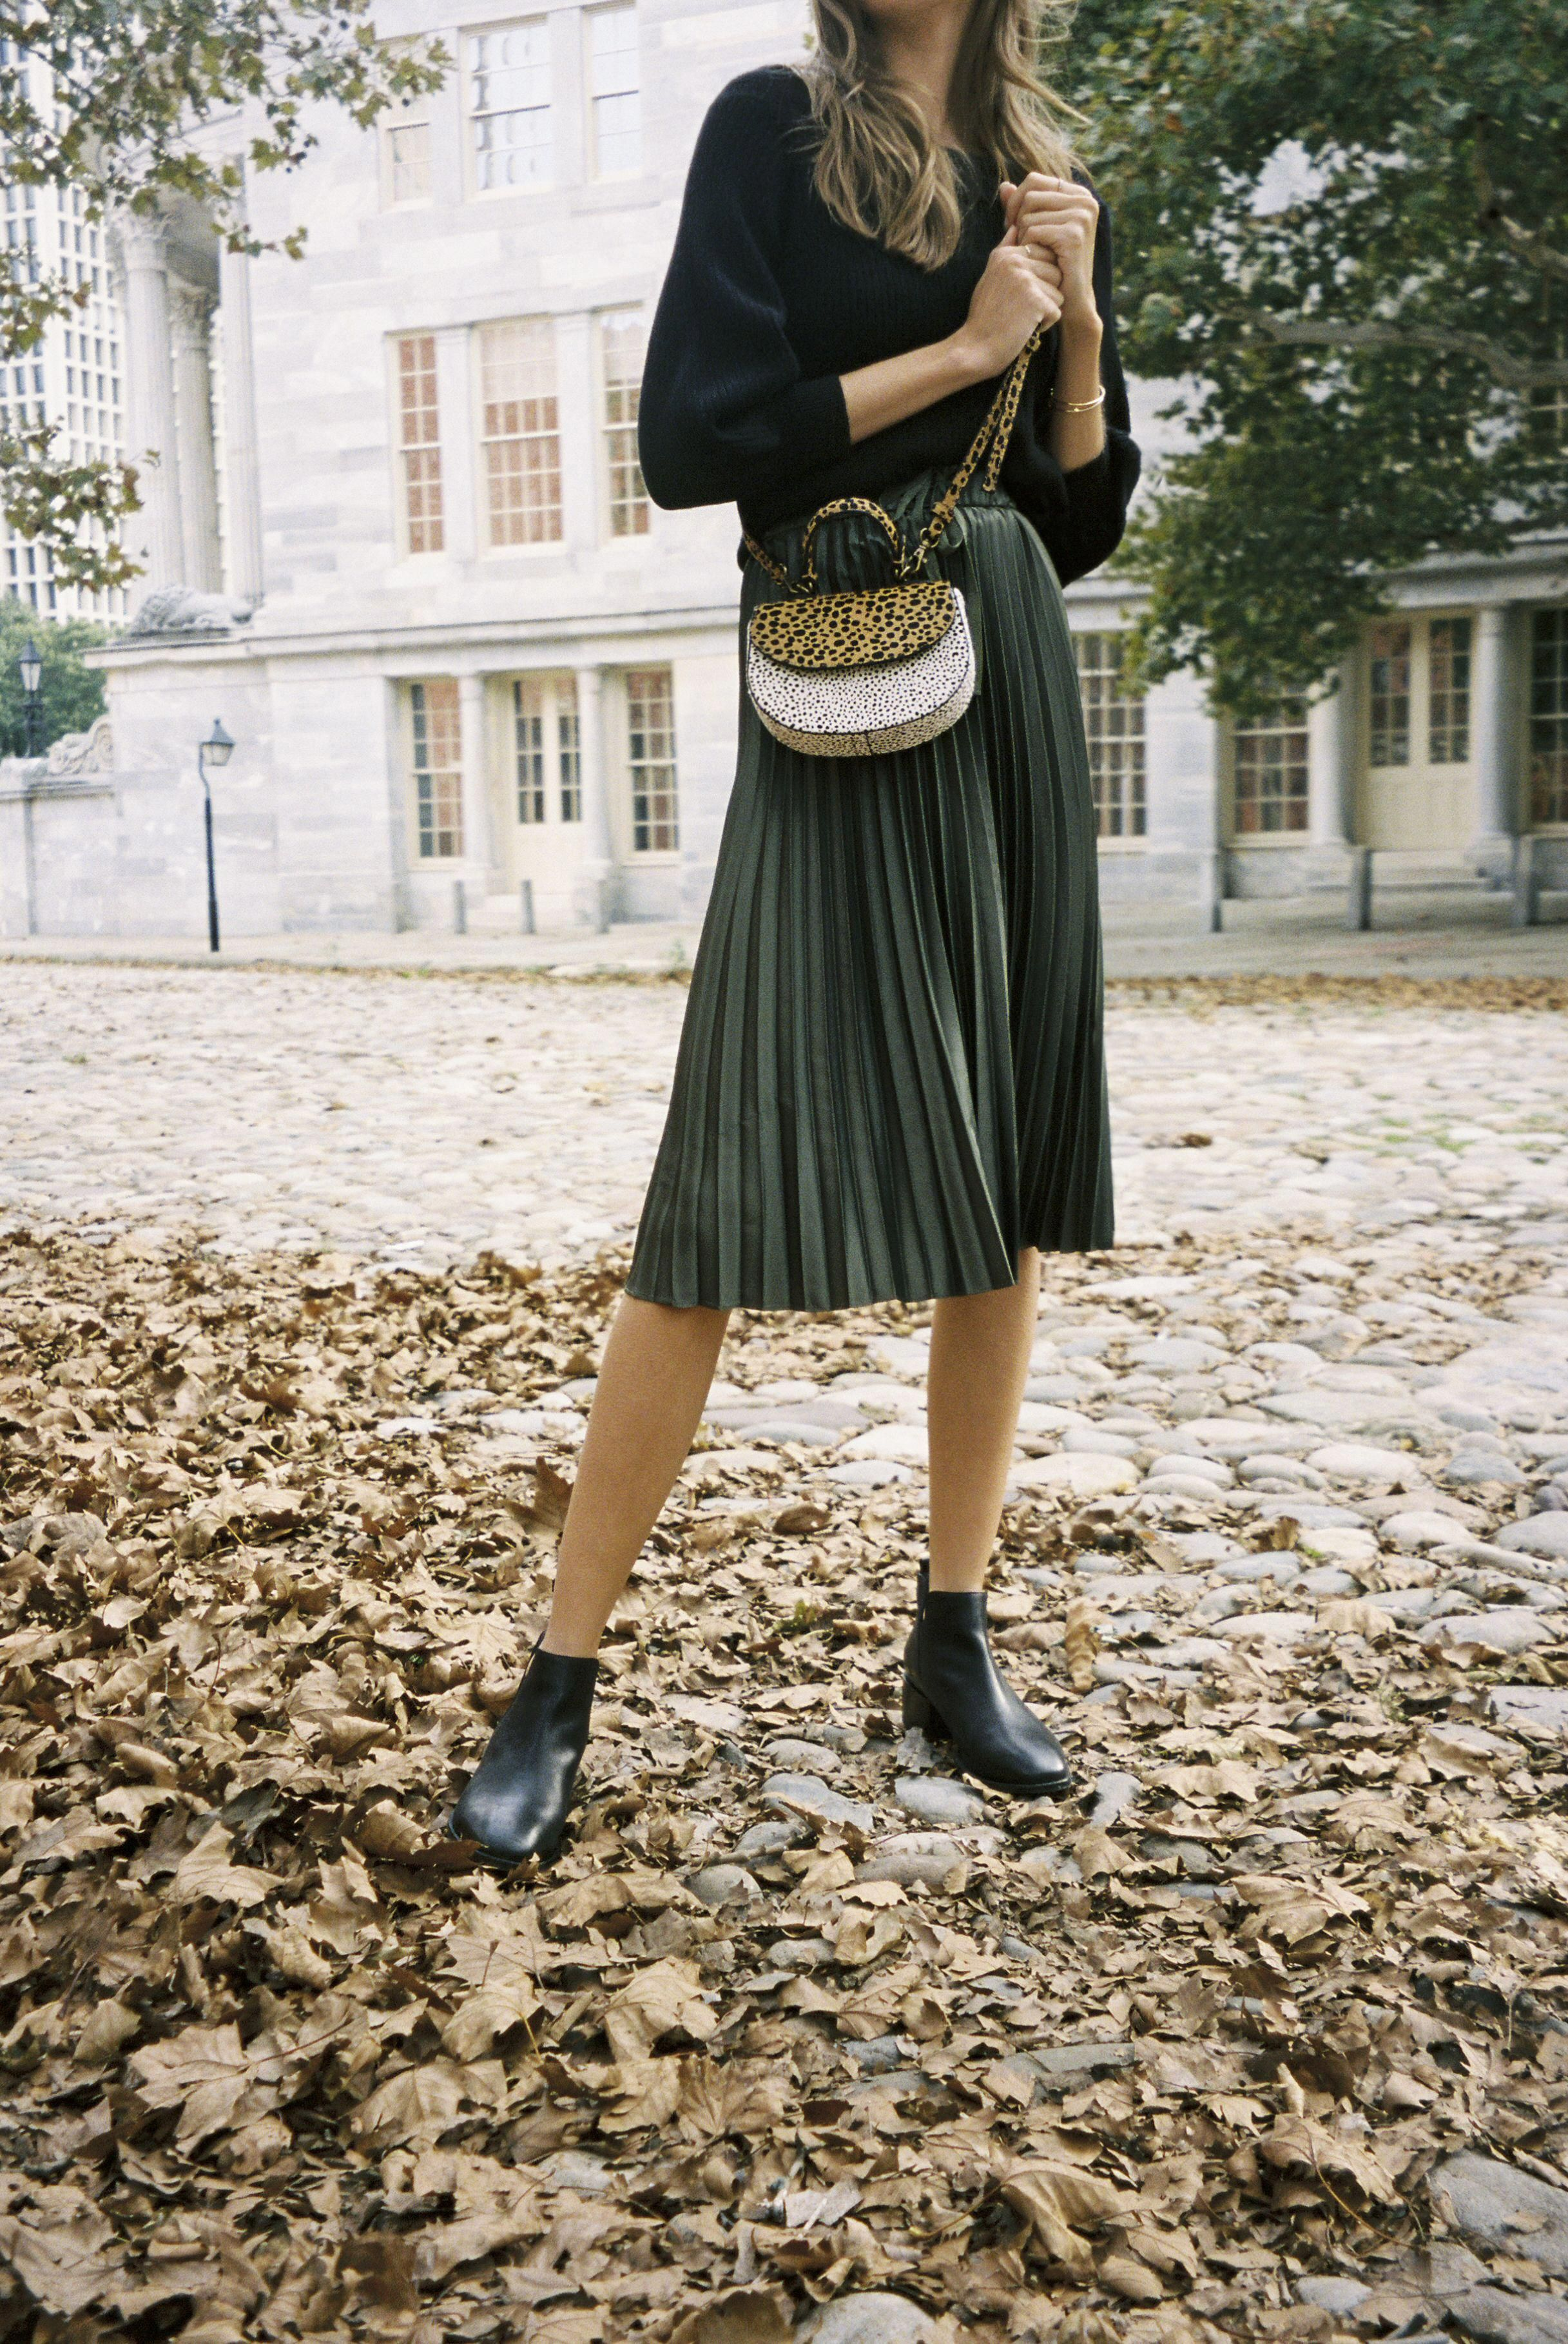 Seychelles Offstage Chelsea Boots | Winter Fashion